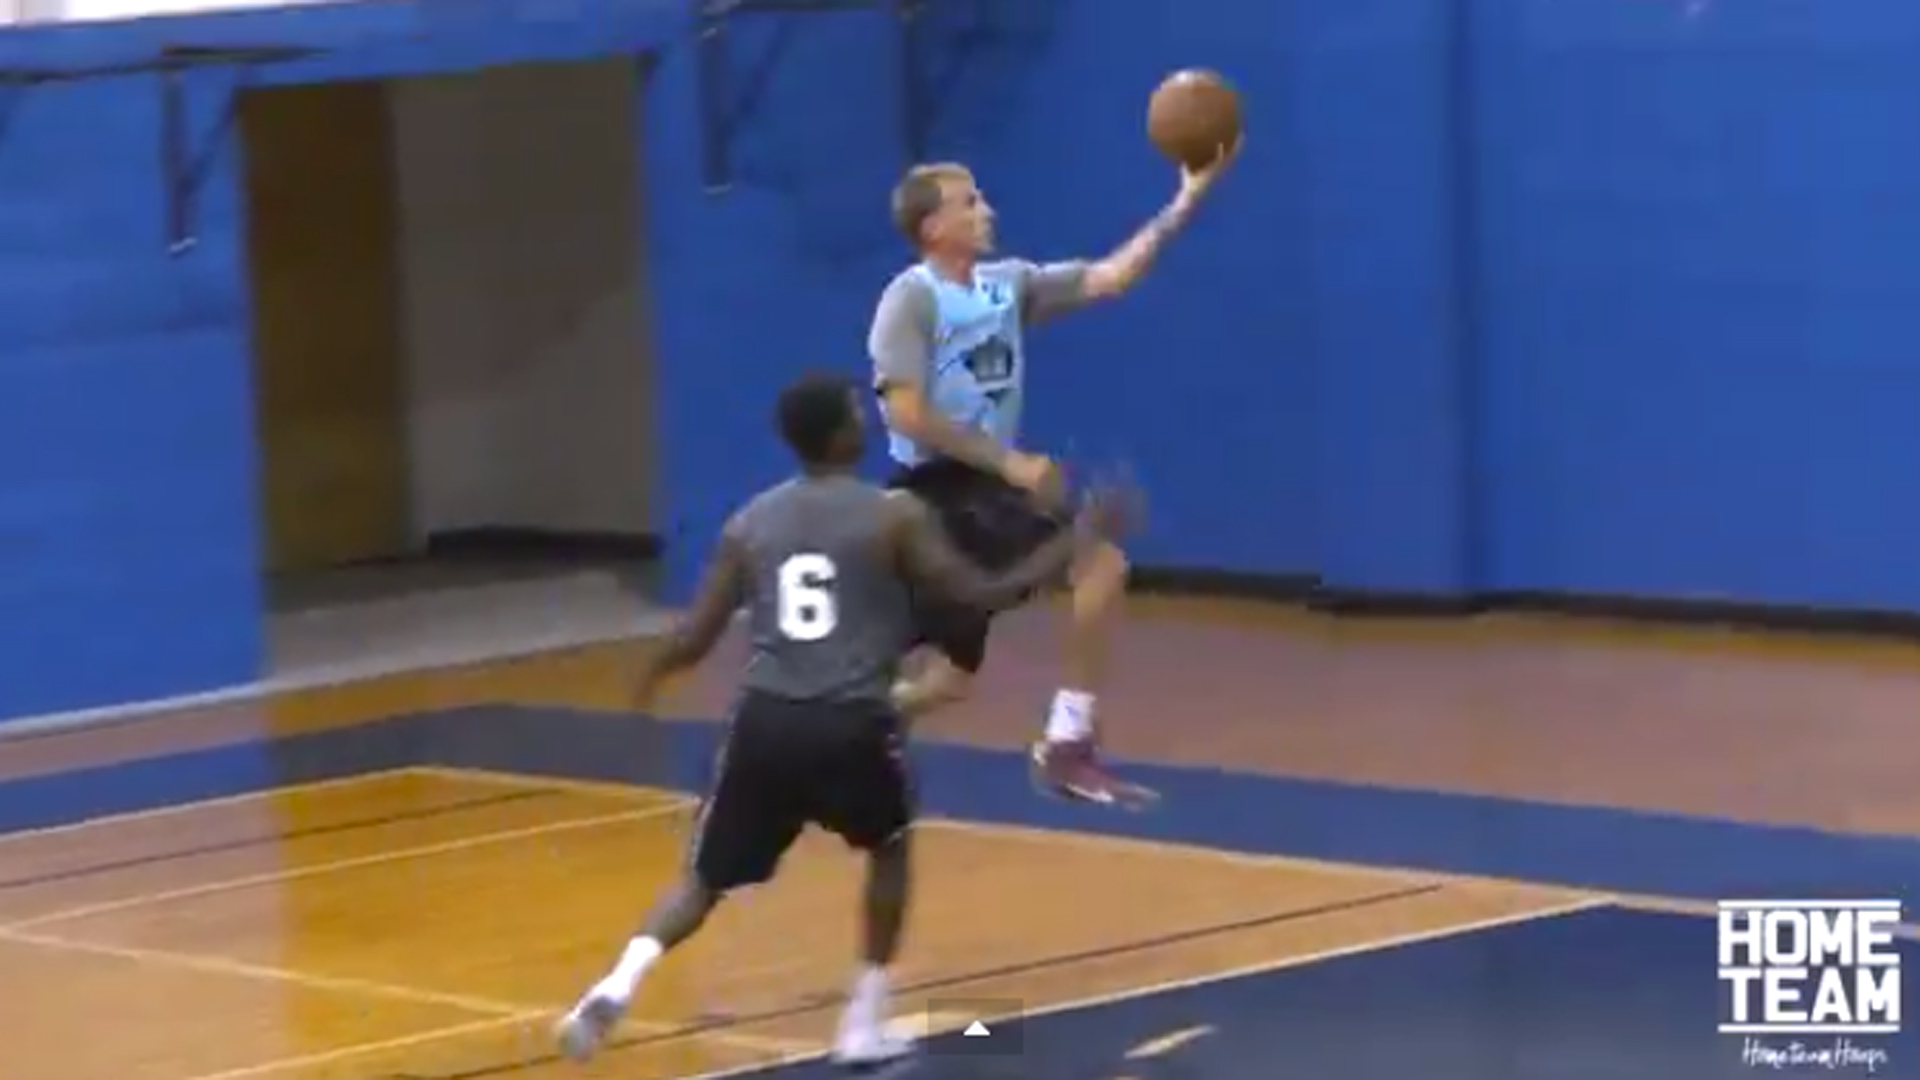 Jason 'White Chocolate' Williams still has killer handles ... at 39